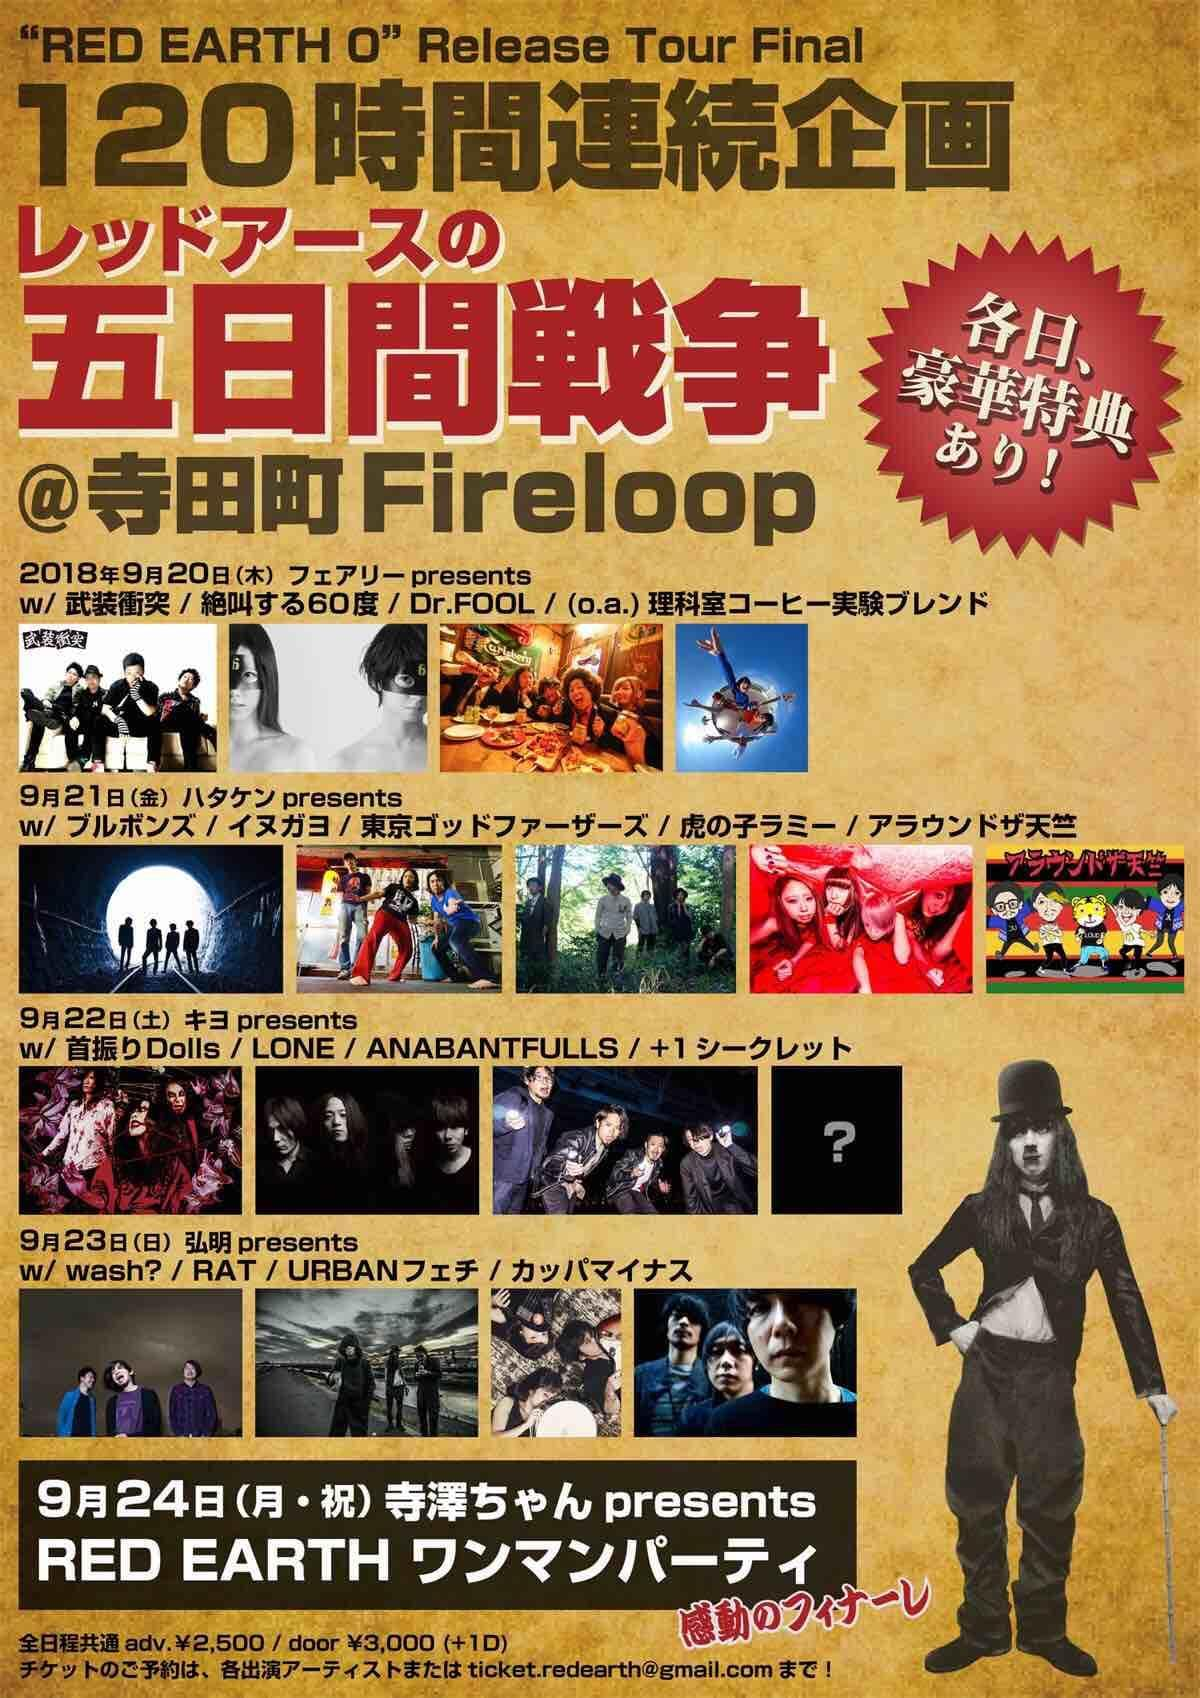 RED EARTH 0 Release Tour Final 120時間連続企画 レッドアースの五日間戦争 キヨpresents